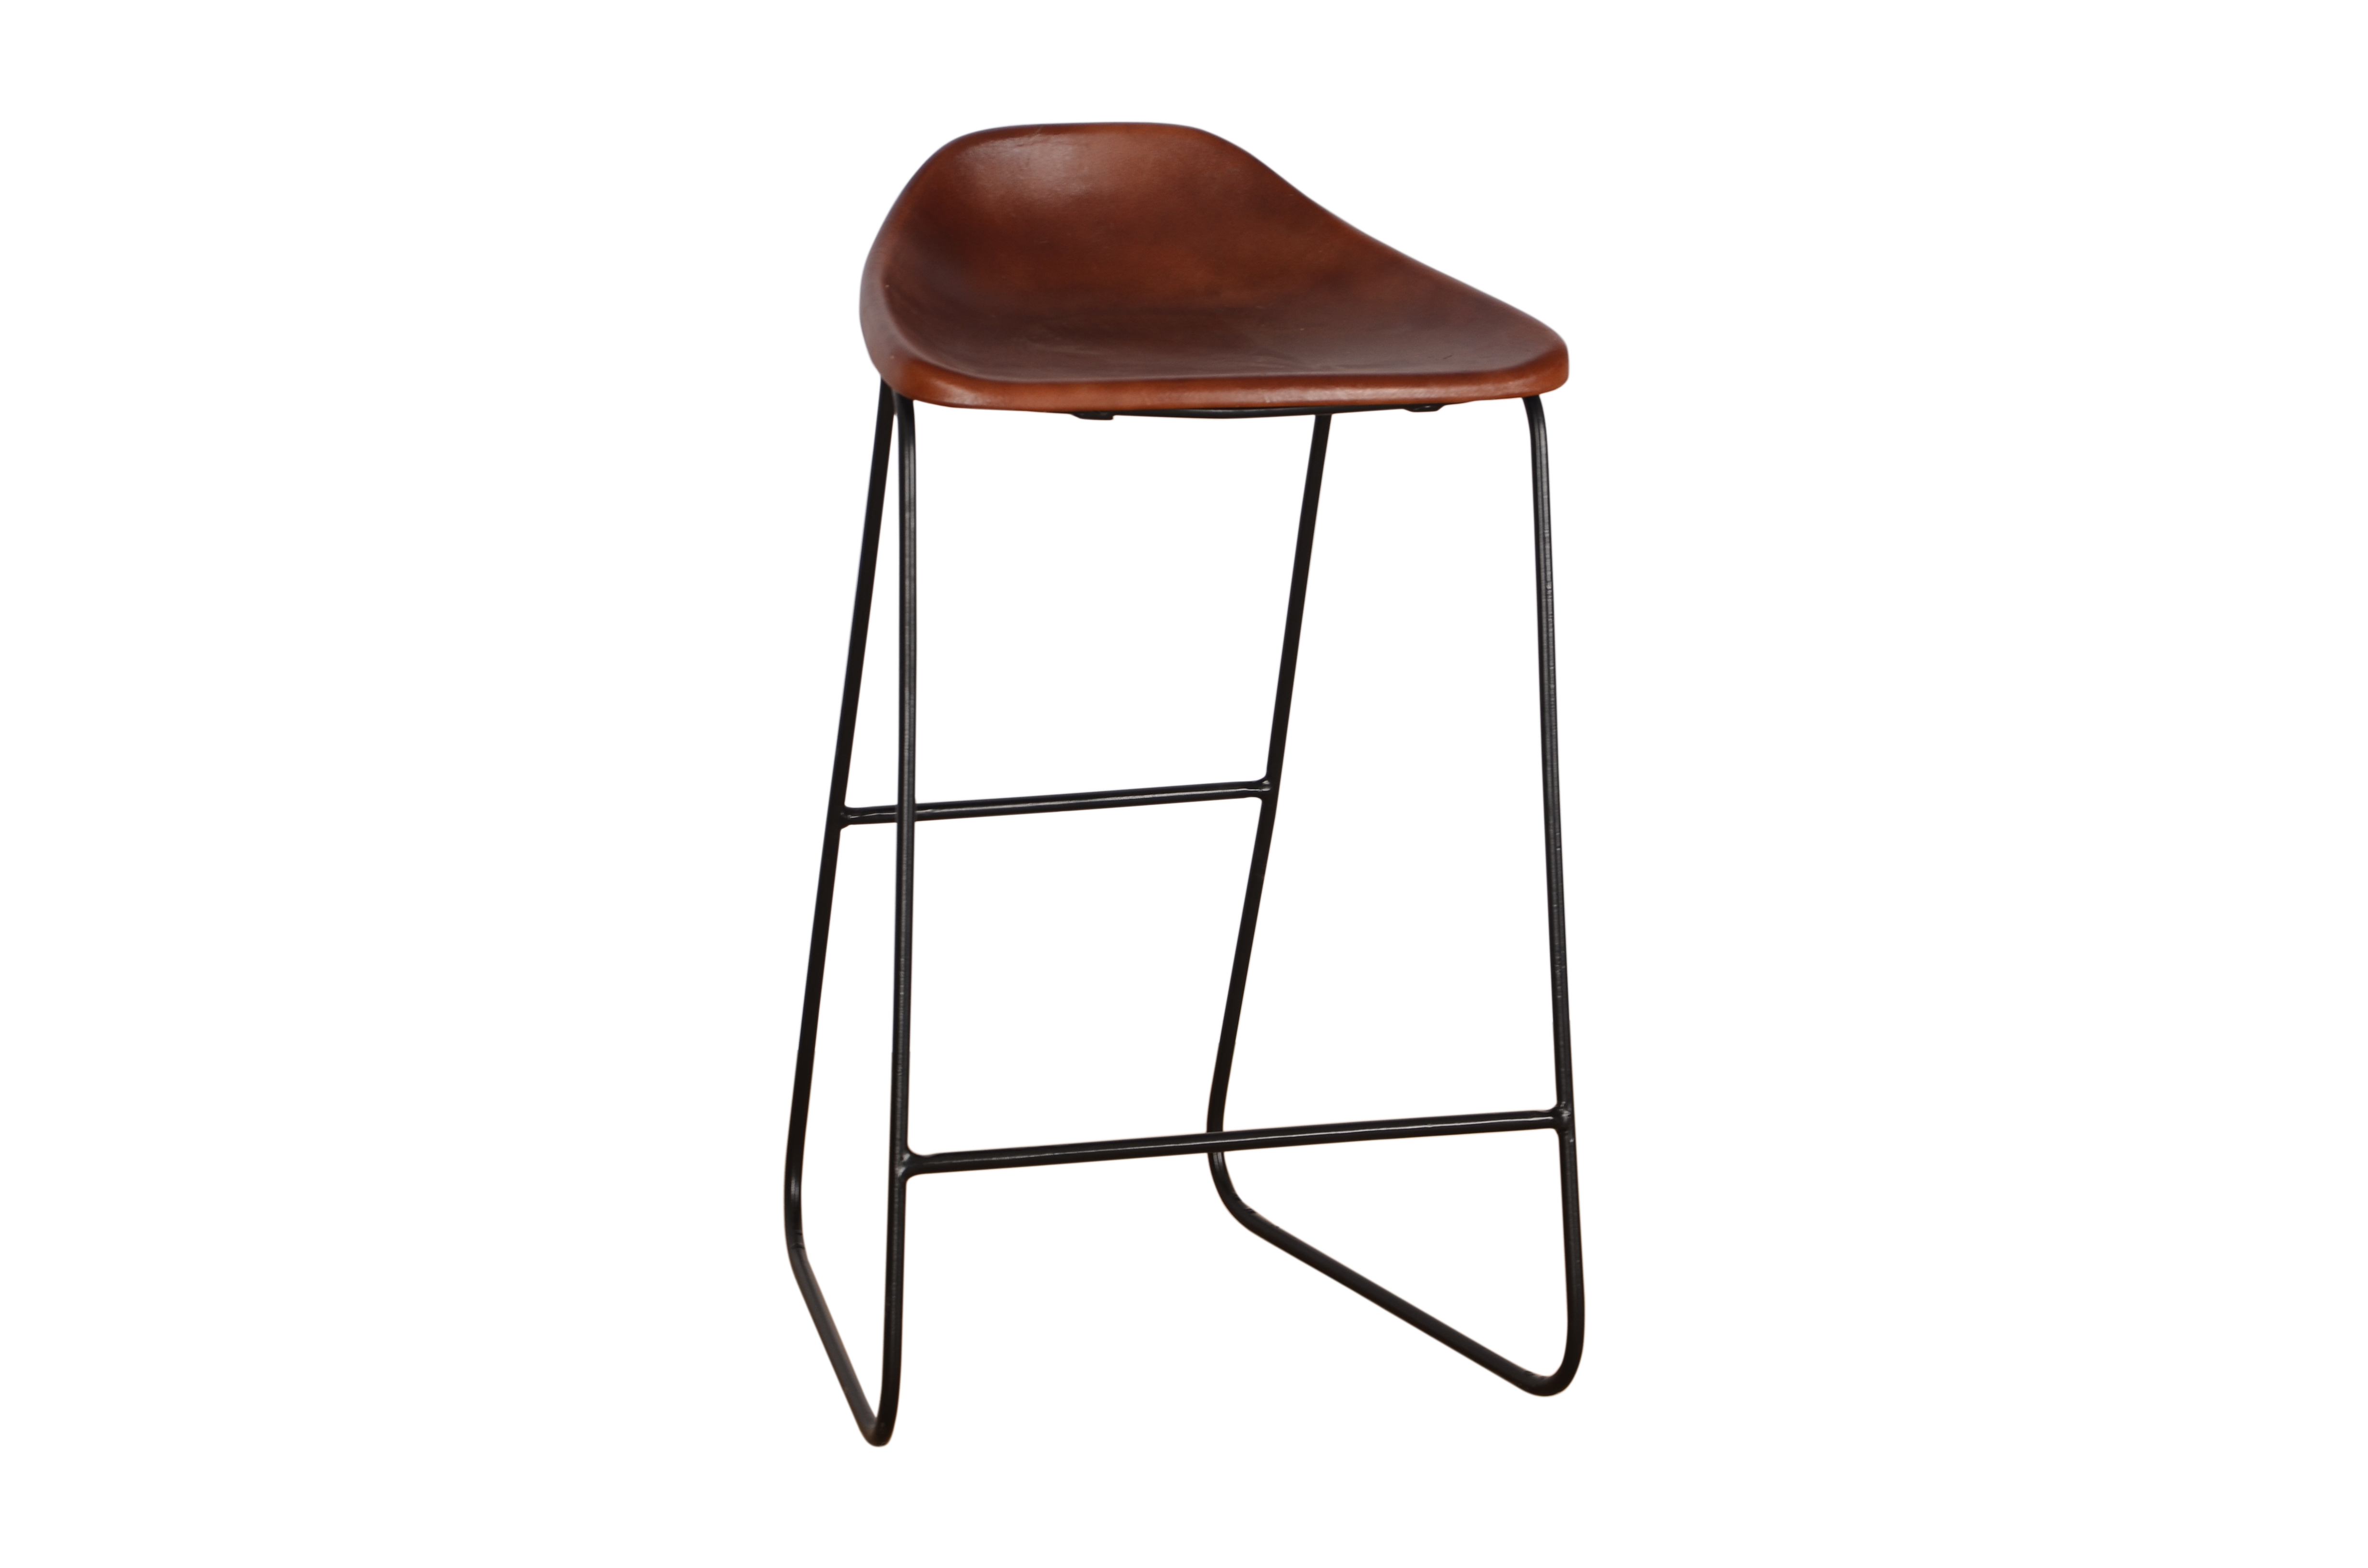 Bar iron chair